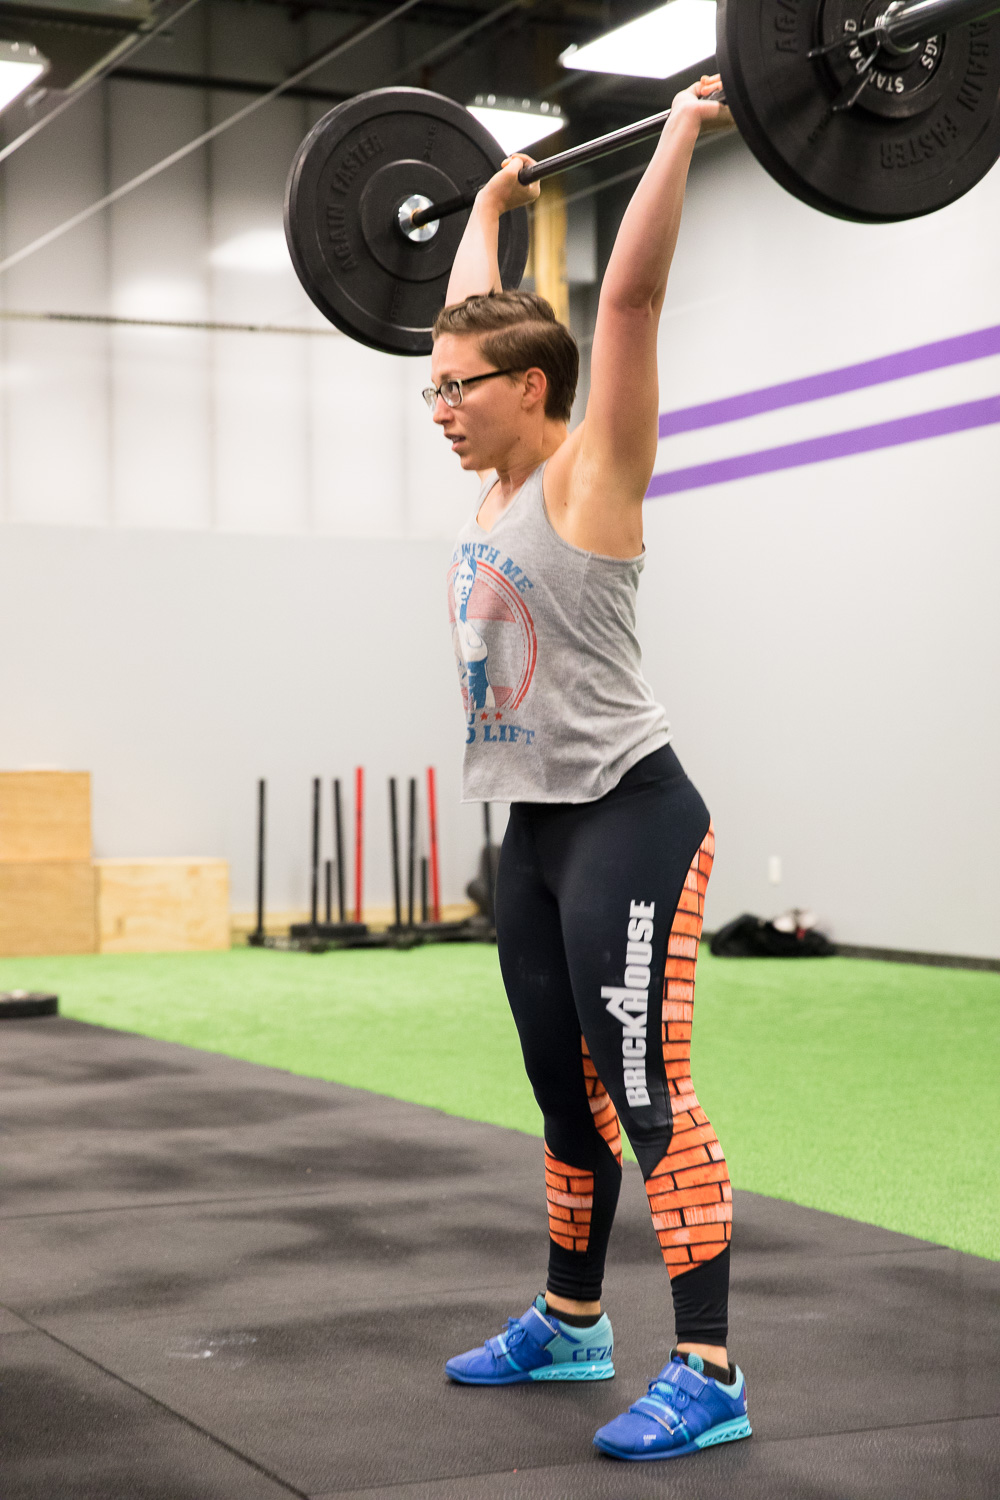 crossfit_homeward-76.jpg